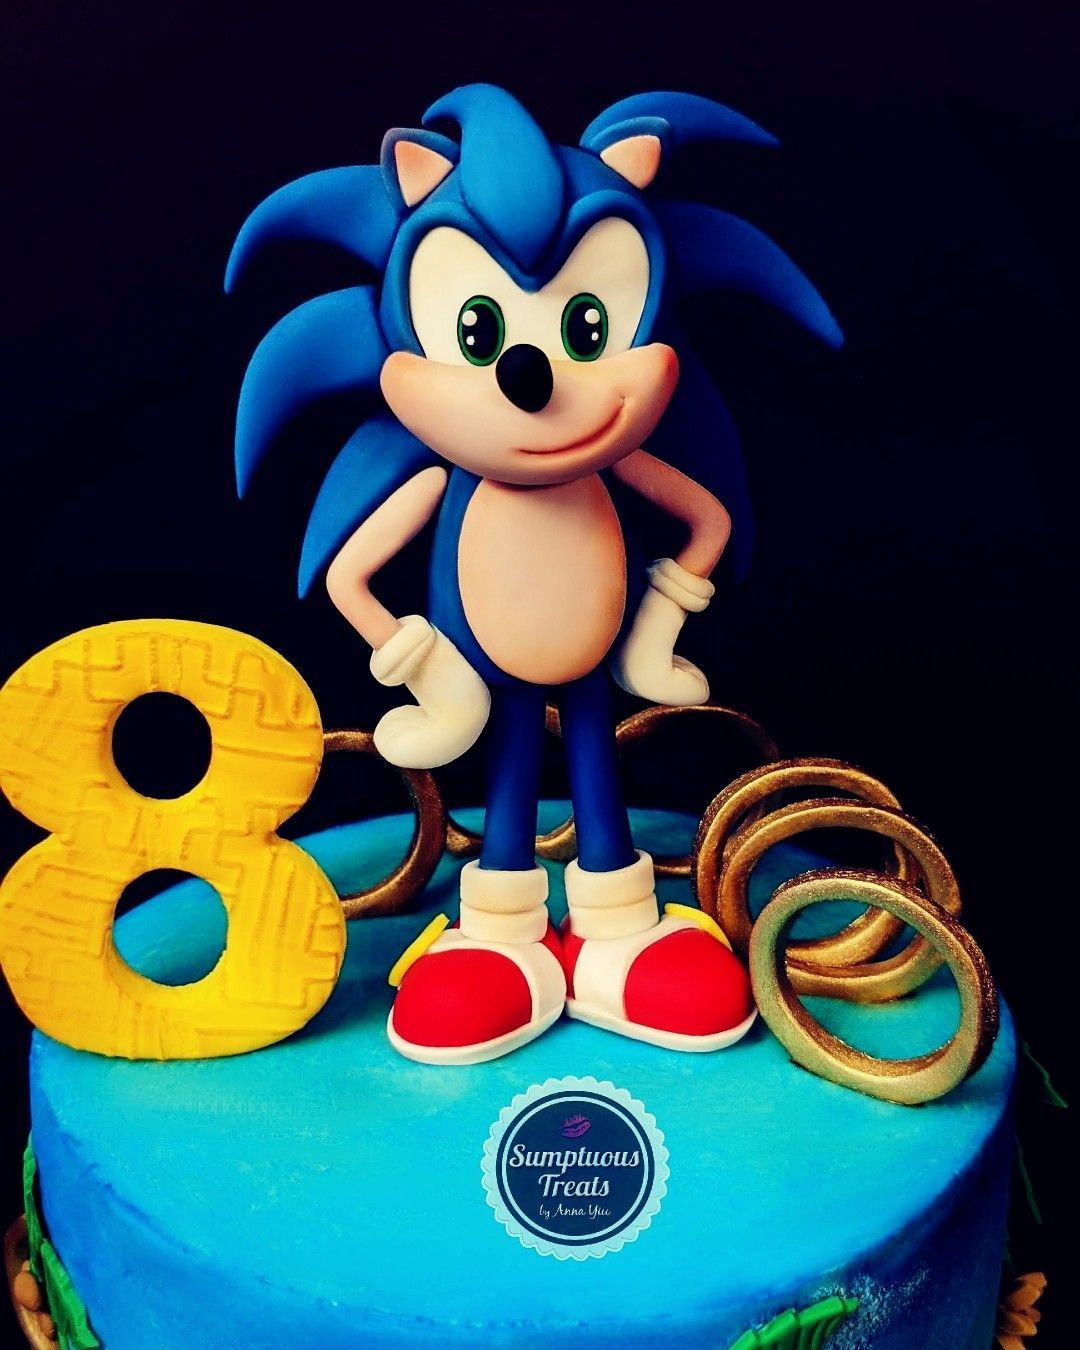 Sonic The Hedgehog Cake Topper Sonic Sonicthehedgehog Sonicthemecake Nintend In 2020 With Images Hedgehog Cake Sonic The Hedgehog Cake Sonic Cake